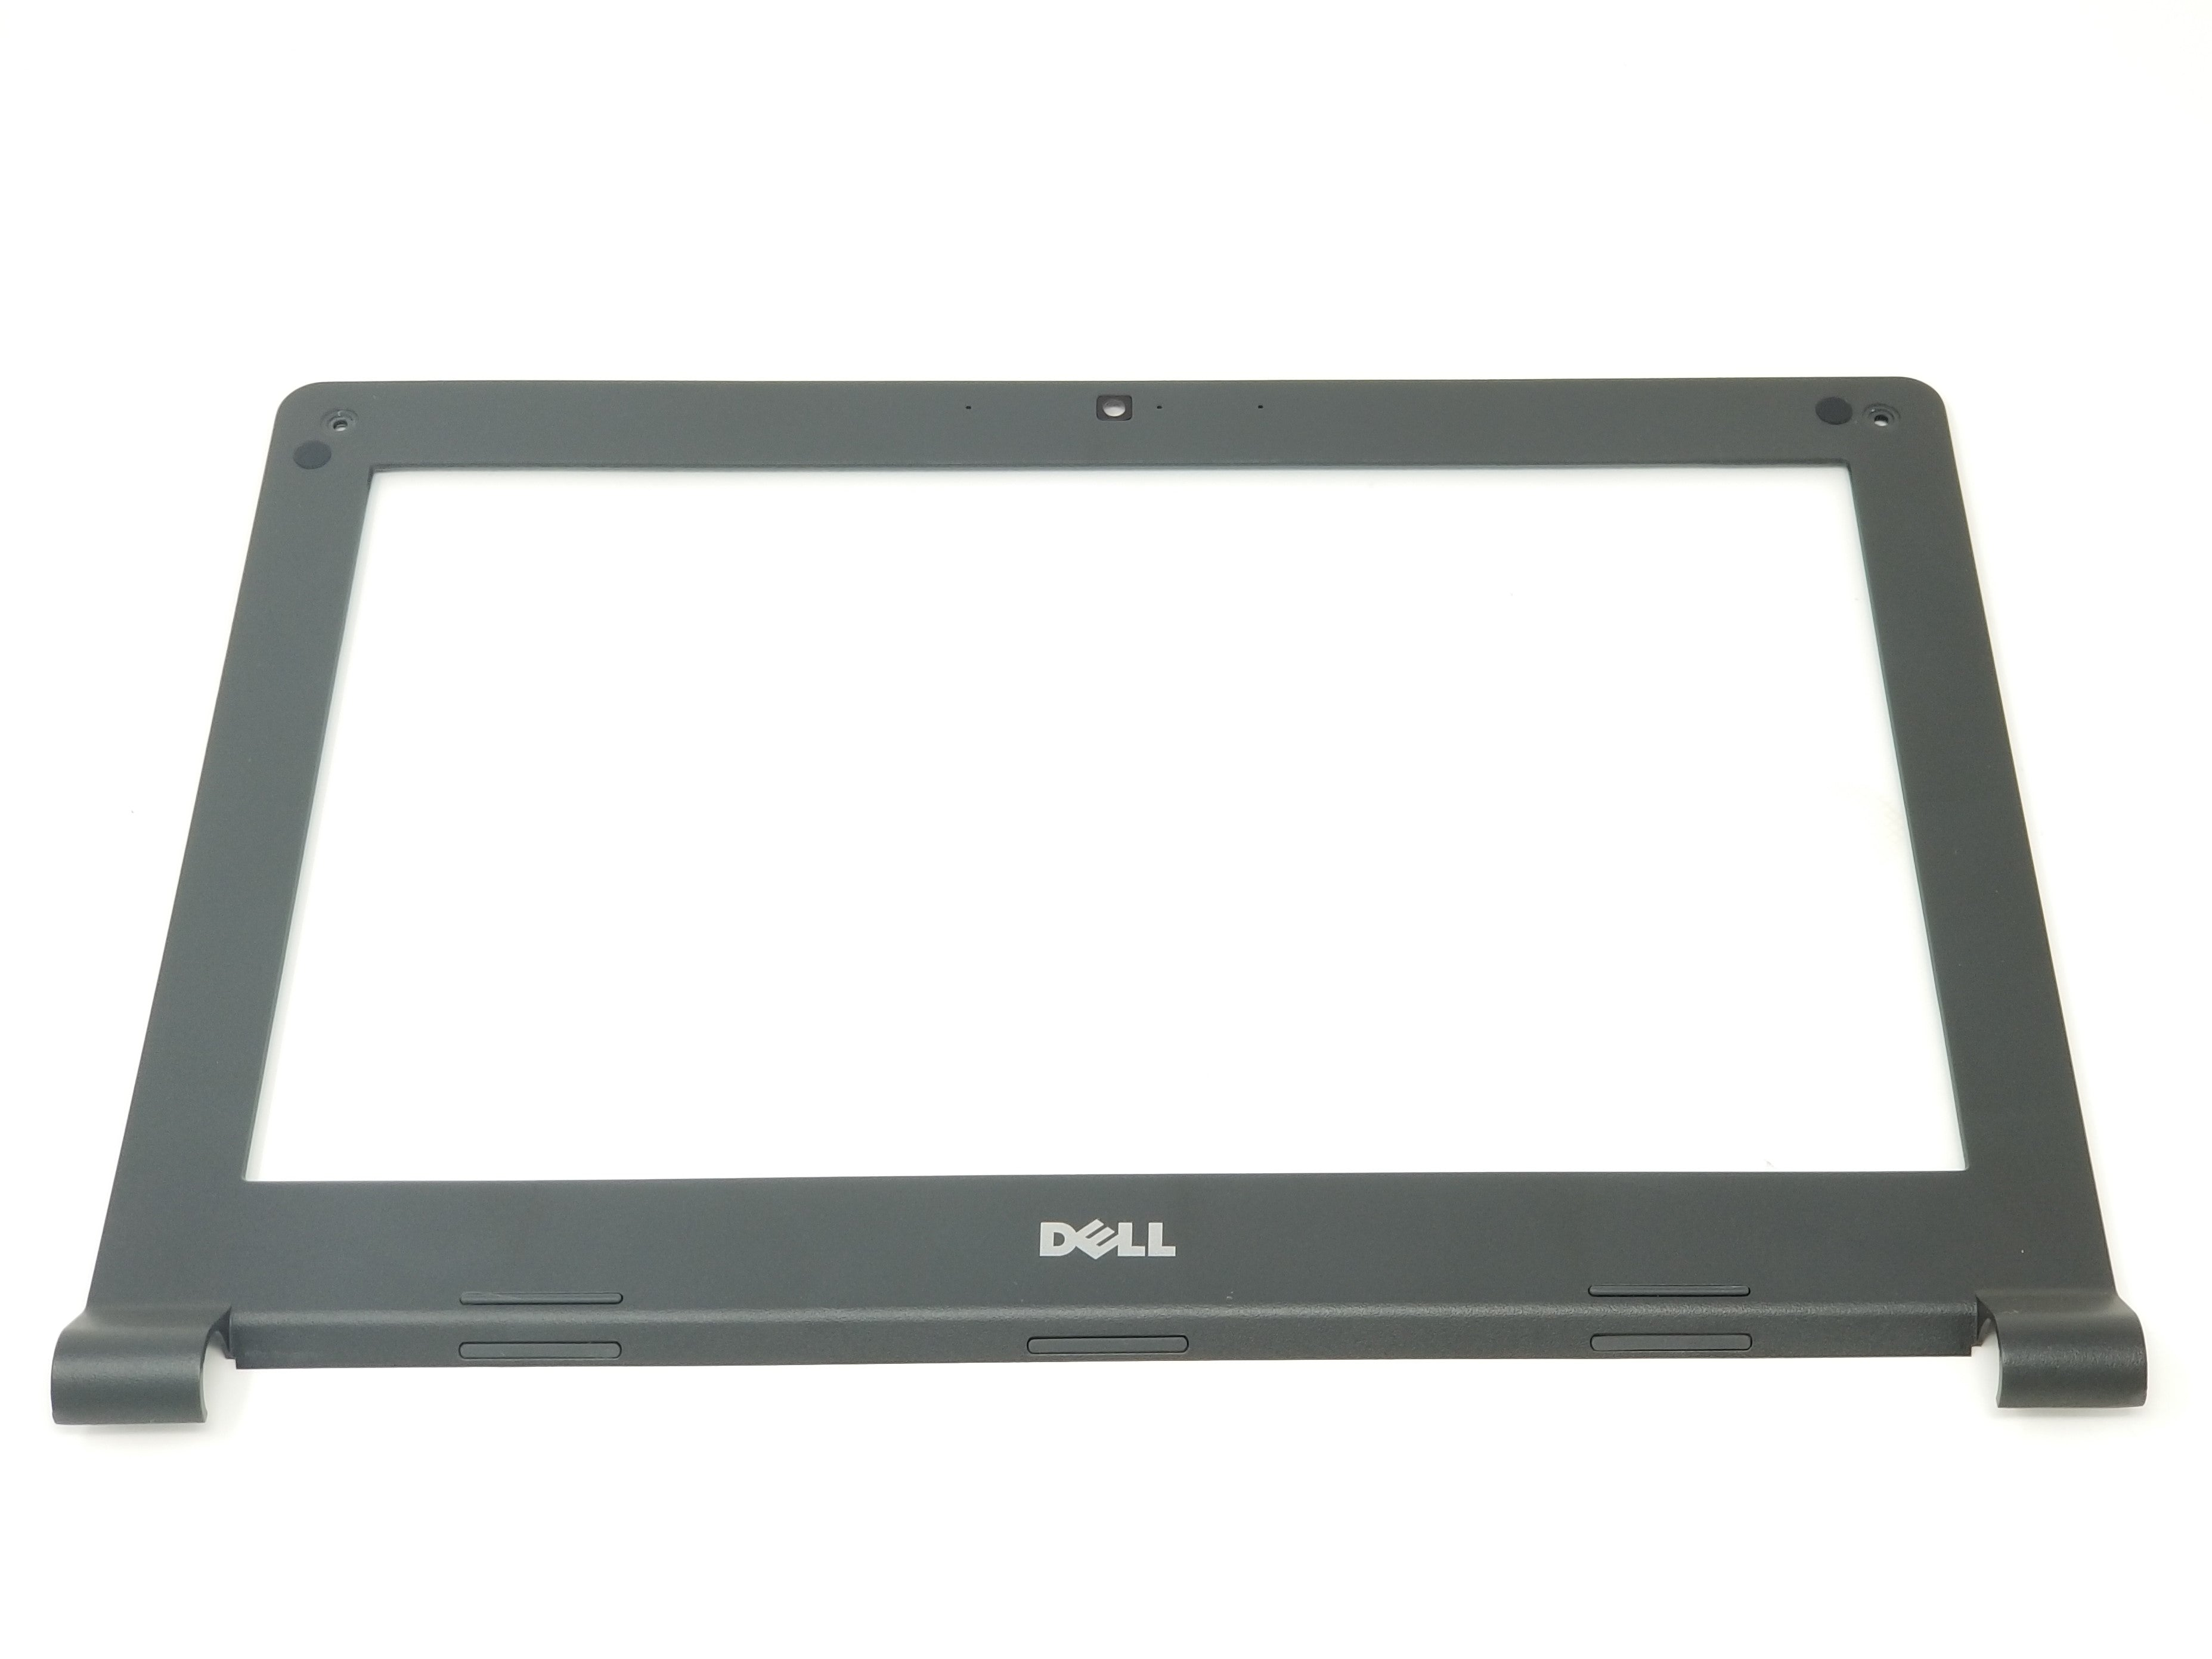 Dell Inspiron 5555 LCD Screen Complete Assembly Grade B